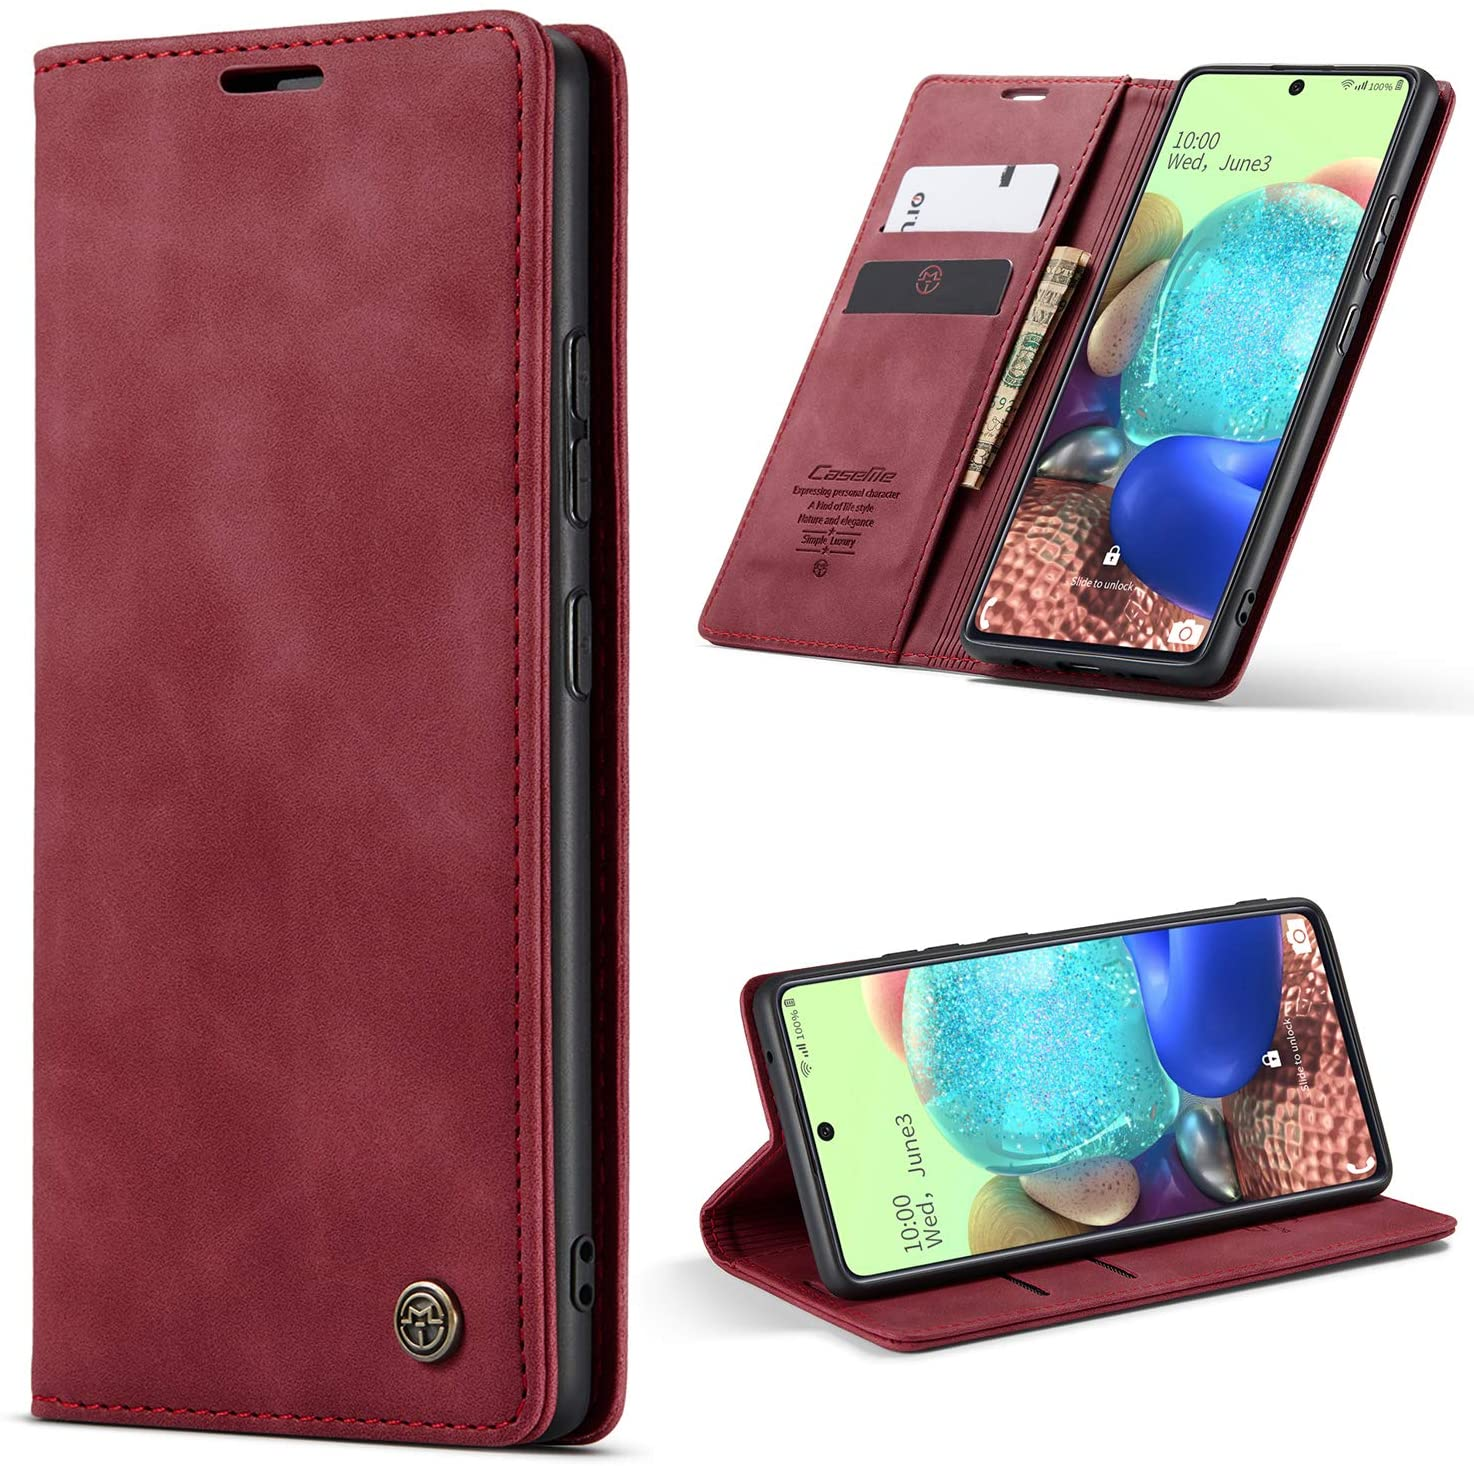 HAII iPhone SE 2020 Case, Flip Fold Leather Wallet Case with Credit Card Slot and Kickstand Magnetic Closure Protective Cover for Apple iPhone SE 2020 (Red)